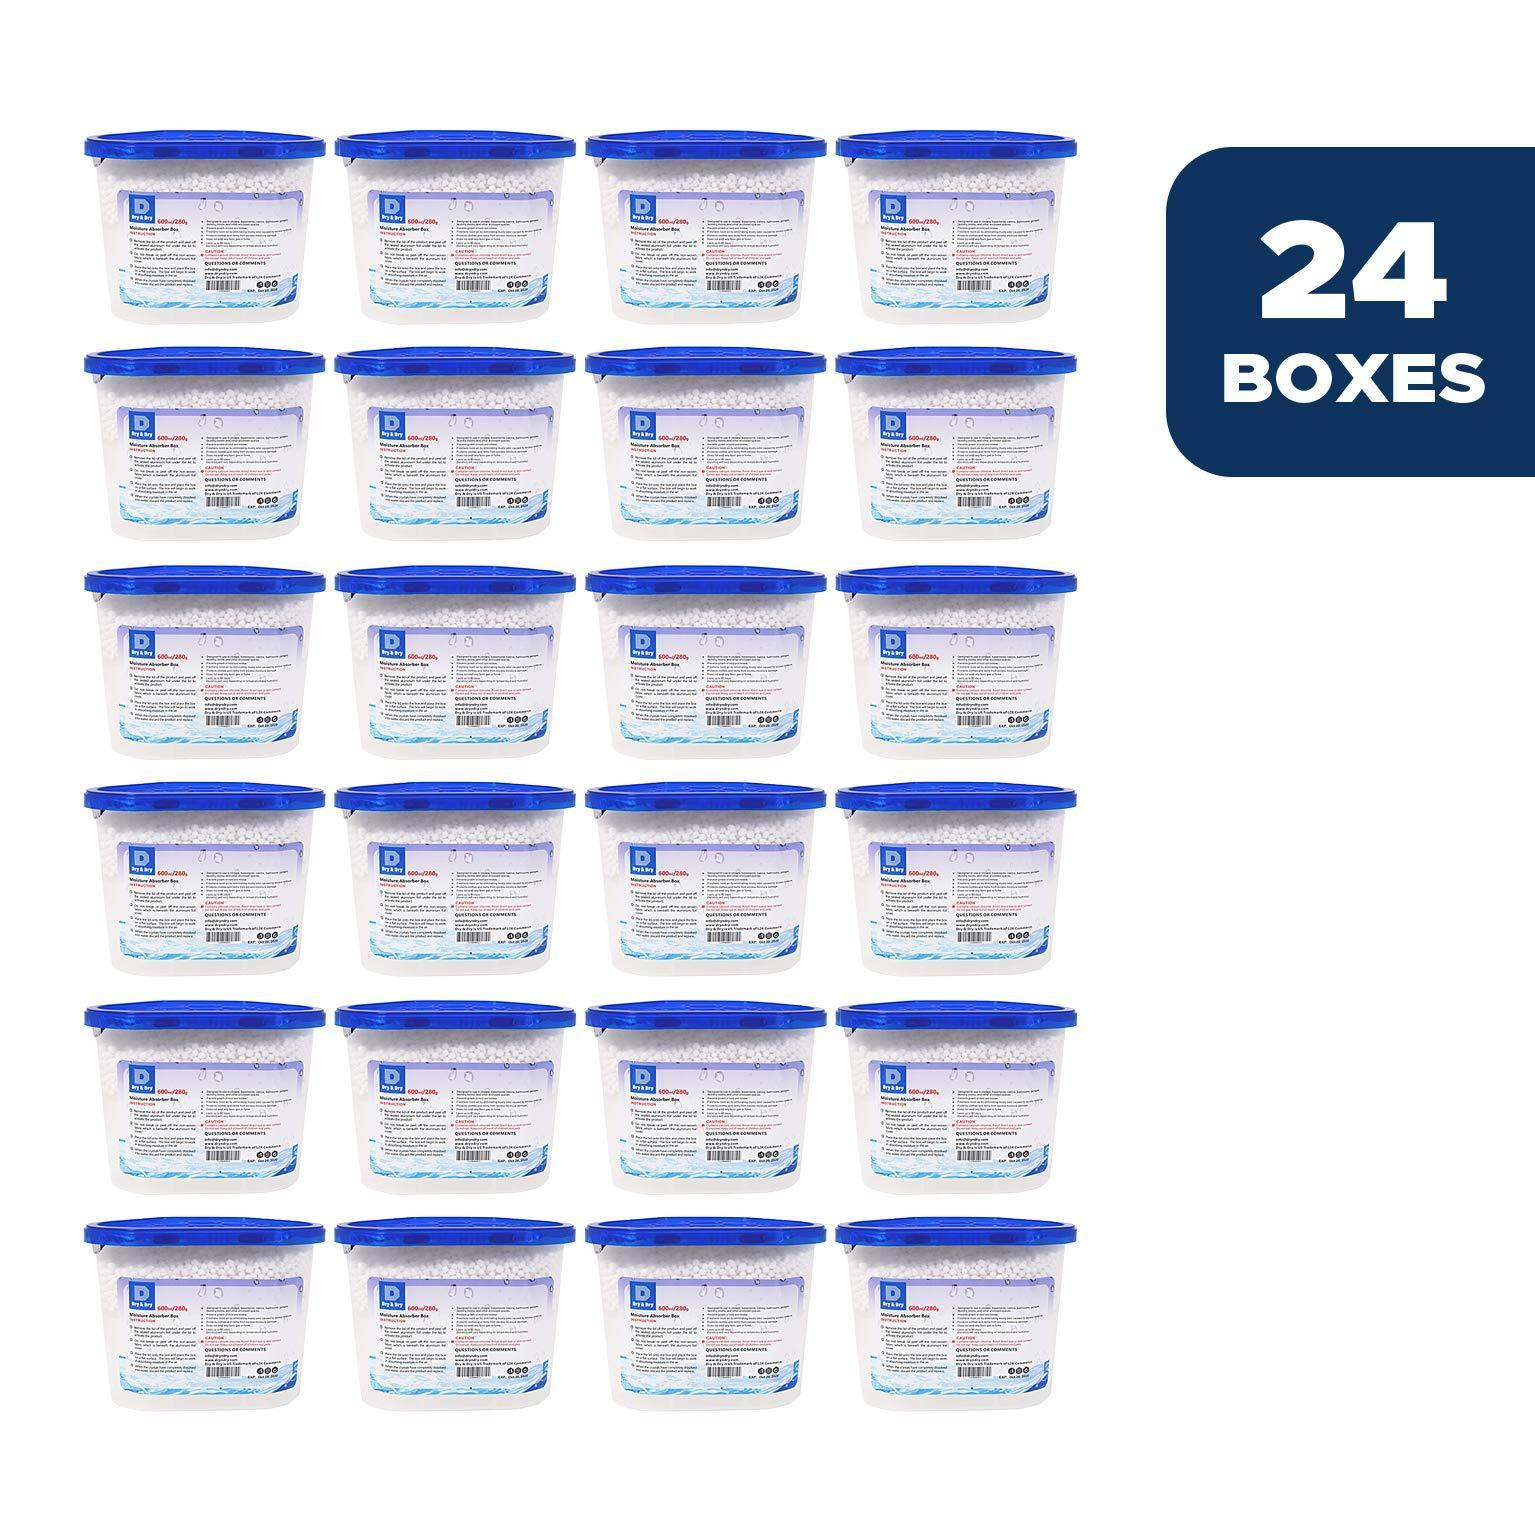 Online shopping dry dry 24 boxes net 10 oz box premium moisture absorber musty odor eliminator boxes to control excess moisture for basements closets bathrooms laundry rooms